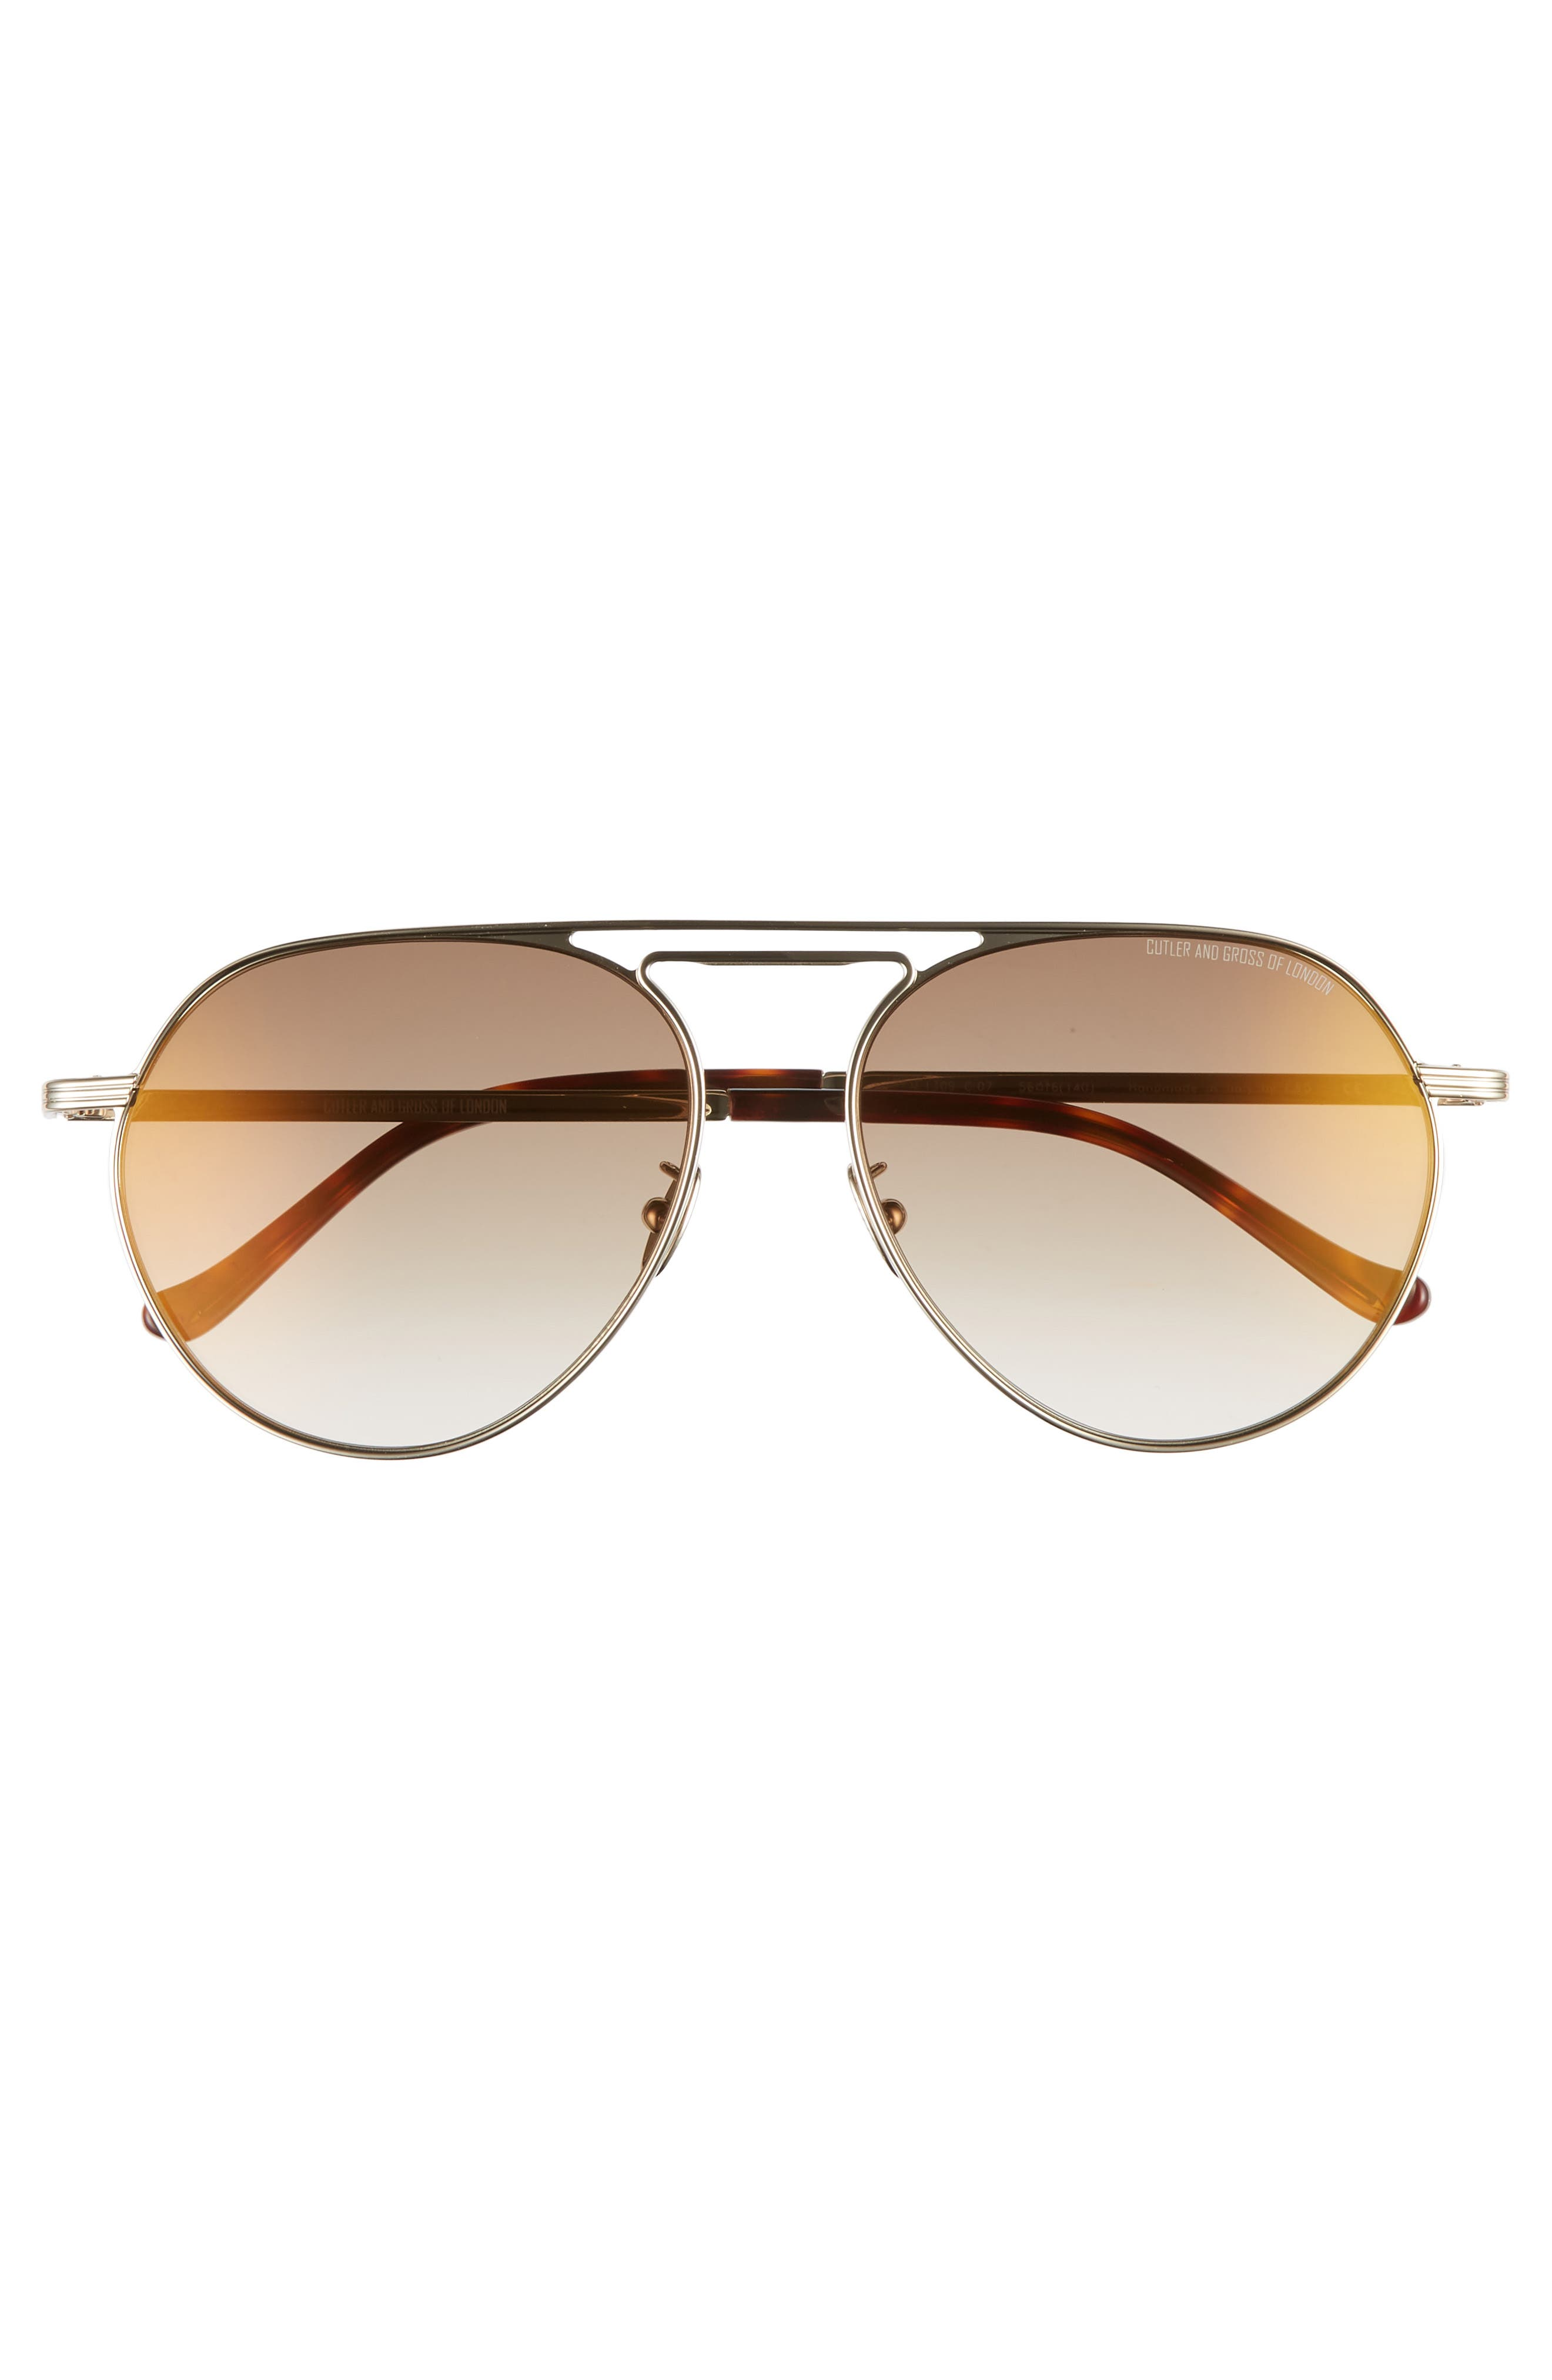 56mm Polarized Aviator Sunglasses,                             Alternate thumbnail 2, color,                             BROWN GOLD/ BROWN